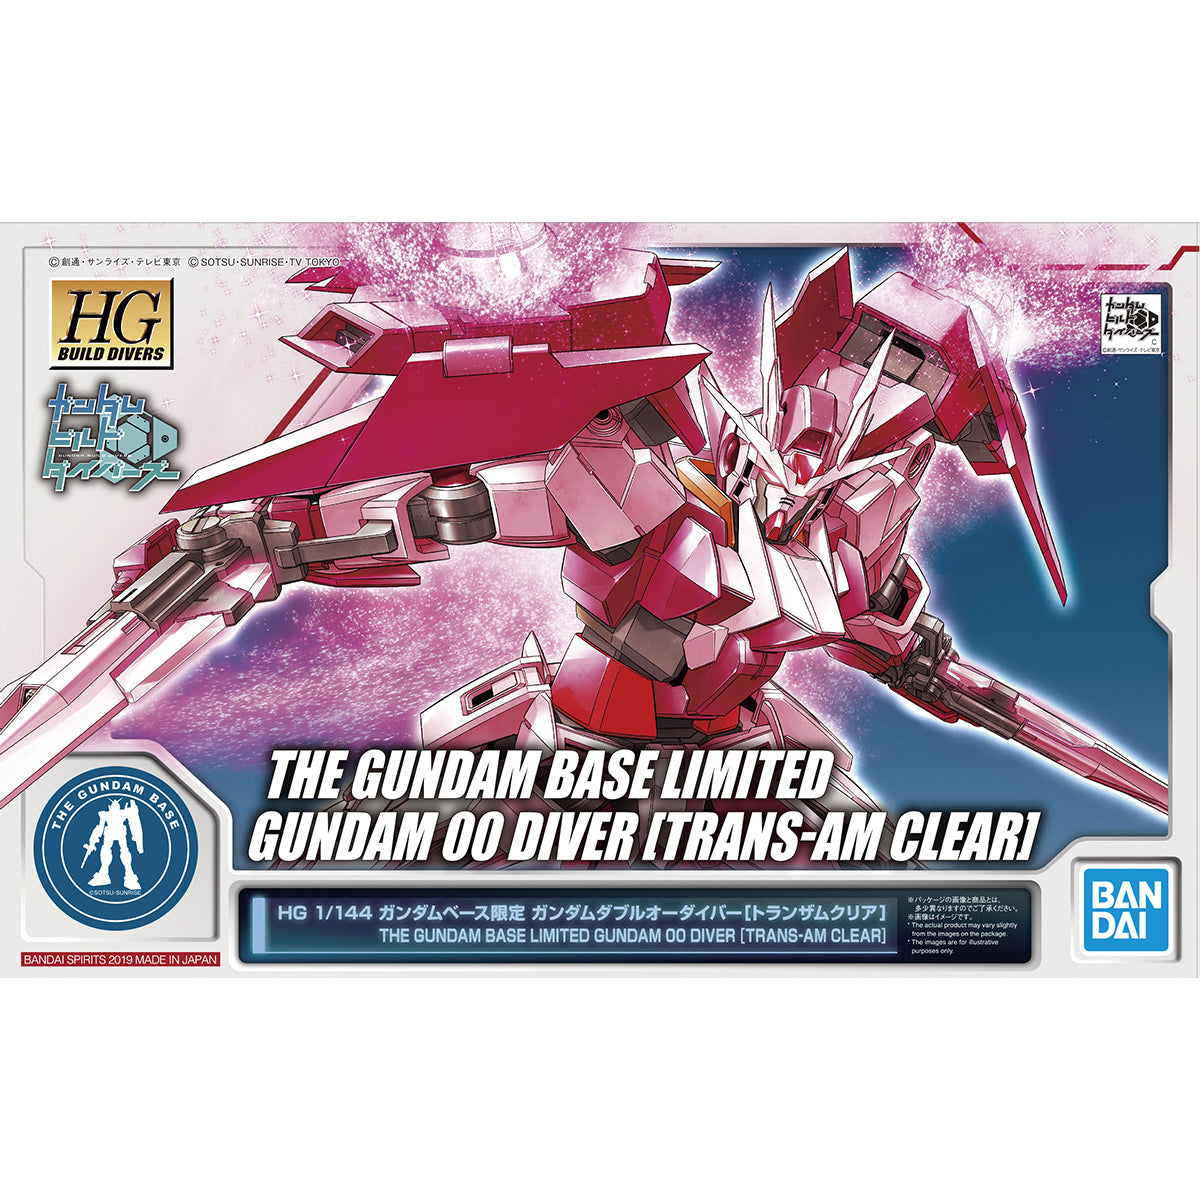 HGBD 1/144 Gundam Base Limited Gundam 00 Diver [Trans-Am Clear]